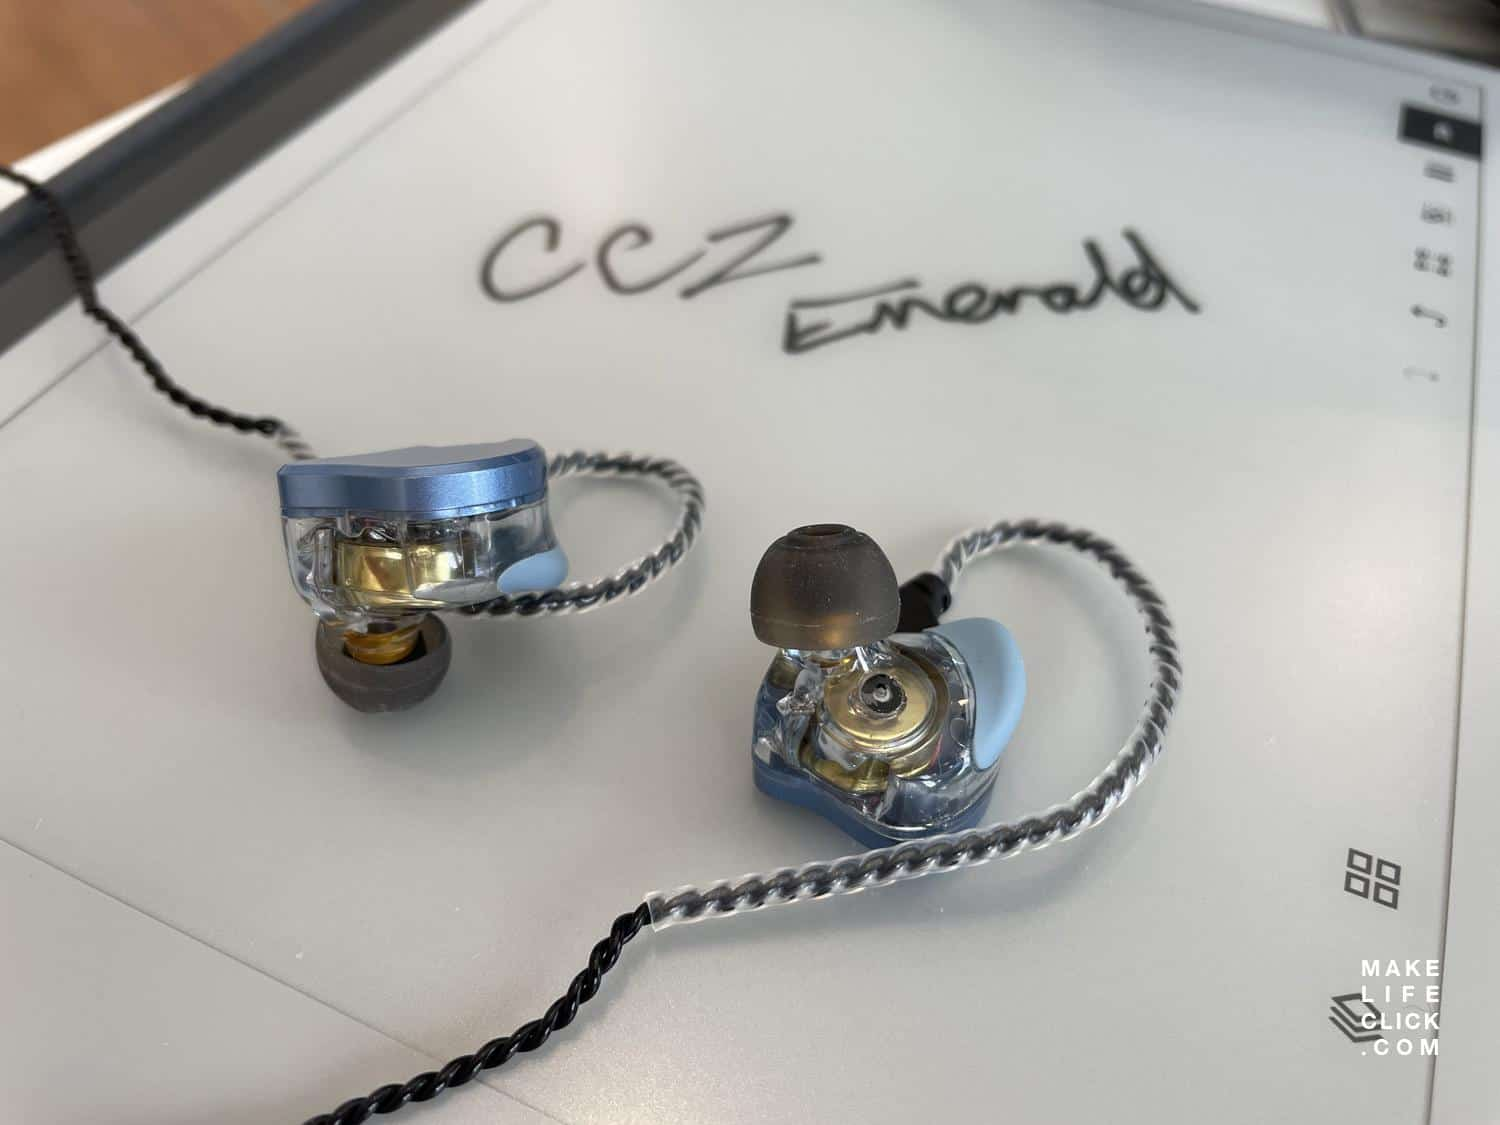 CCZ Emerald on Remarkable tablet